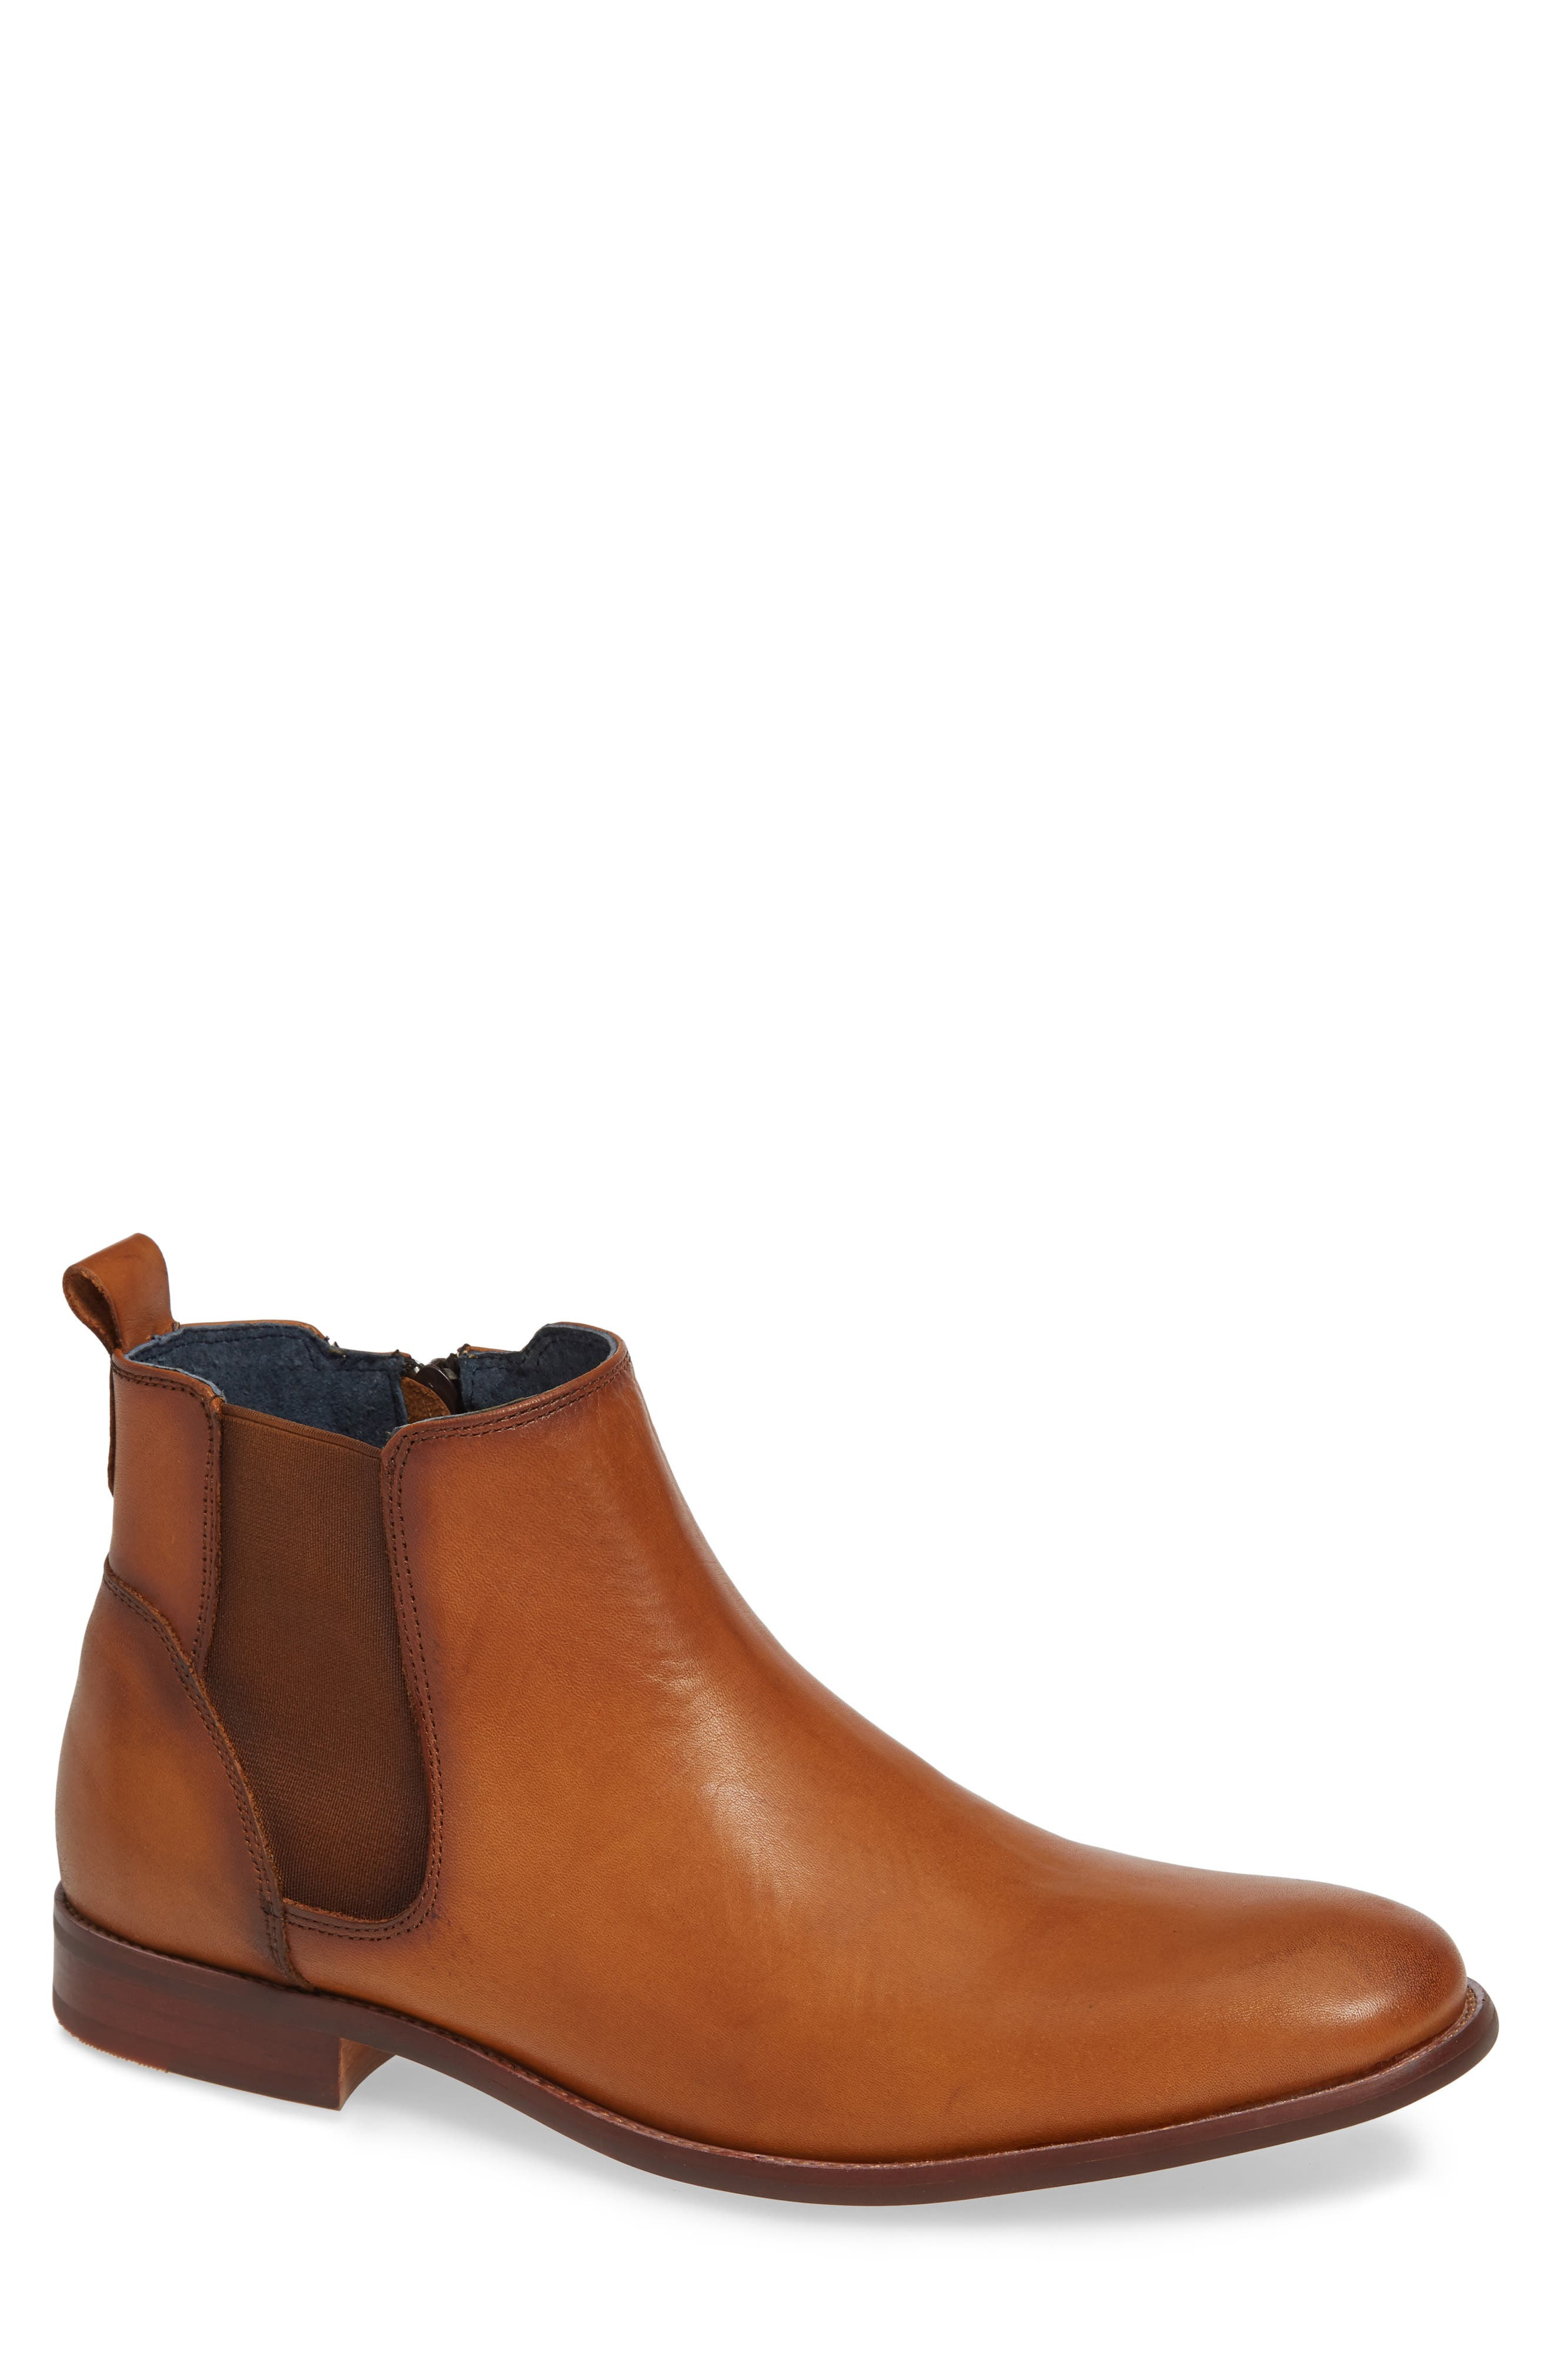 JUMP, Collin Plain Toe Chelsea Boot, Main thumbnail 1, color, TAN